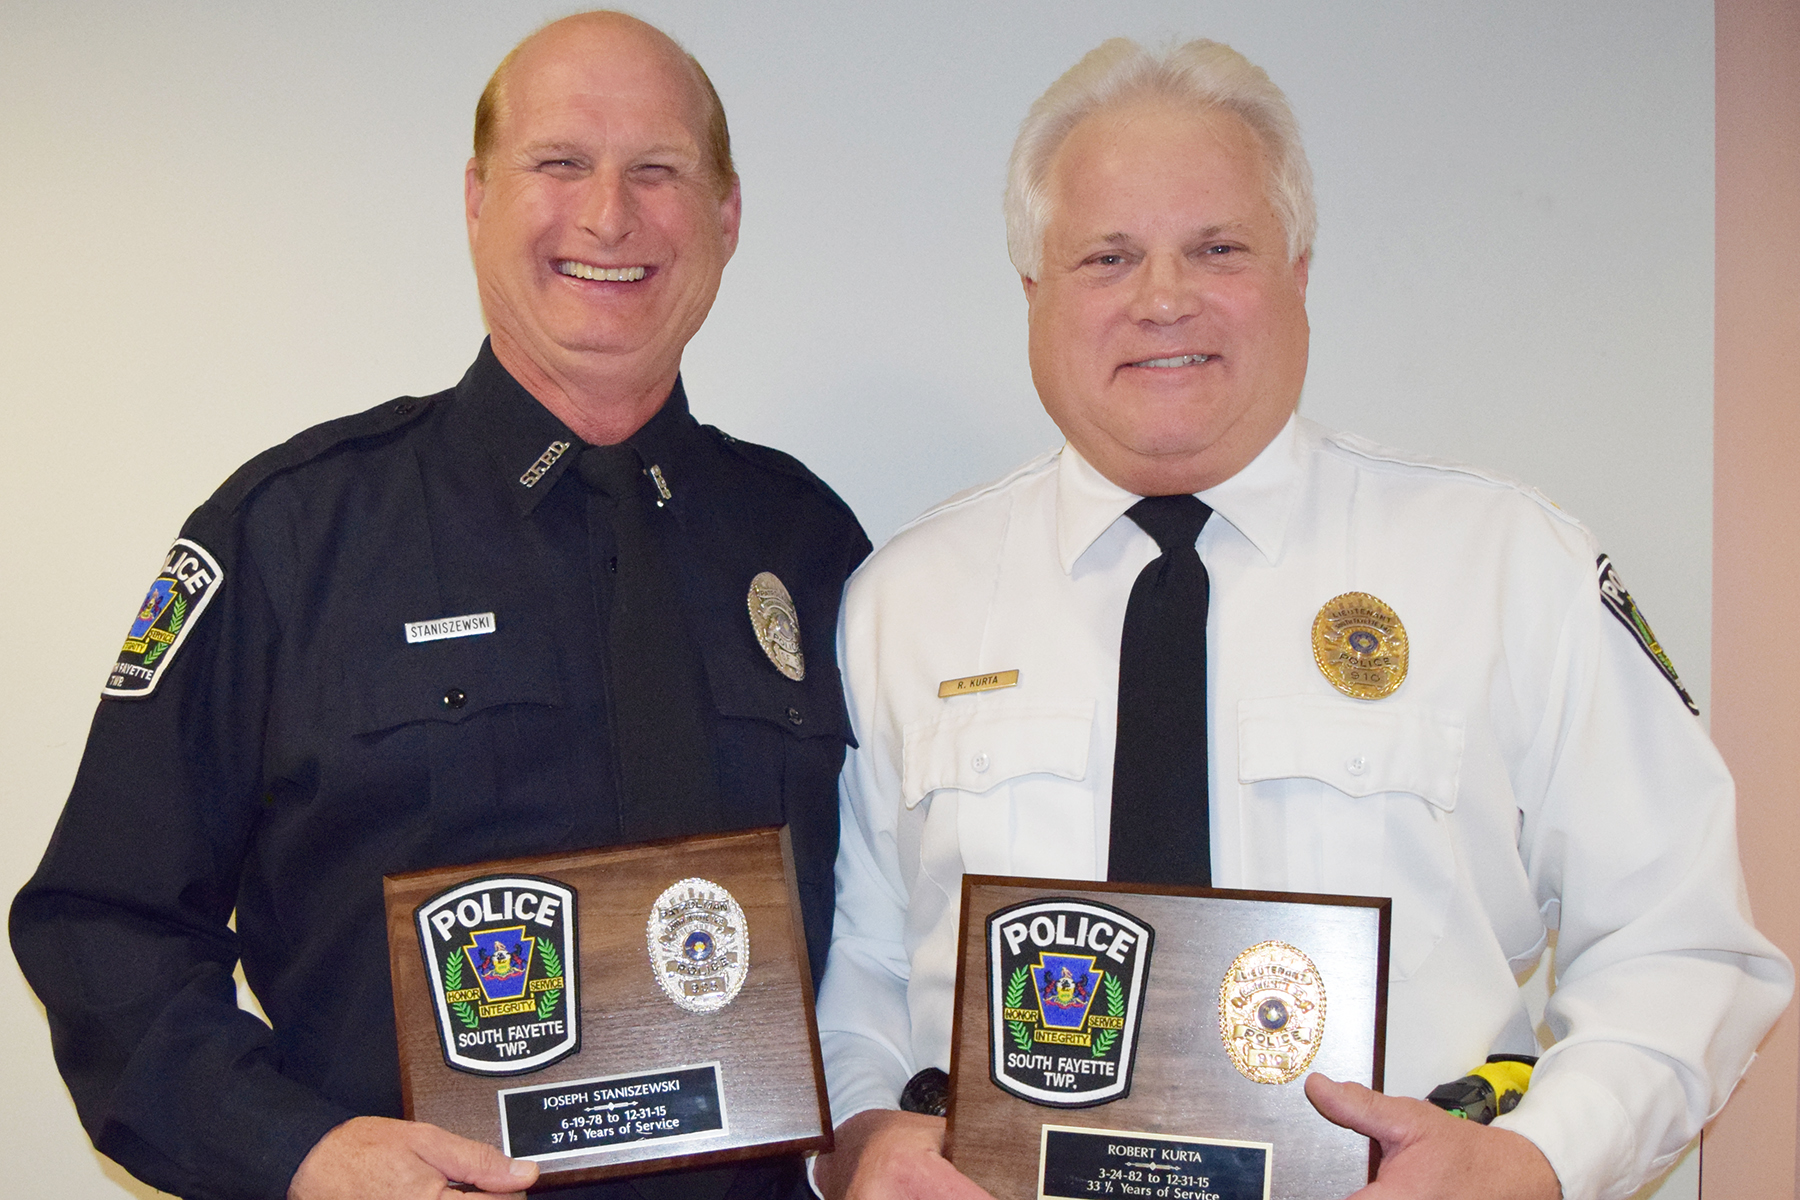 Police retirees Joe Staniszewski and Bob Kurta